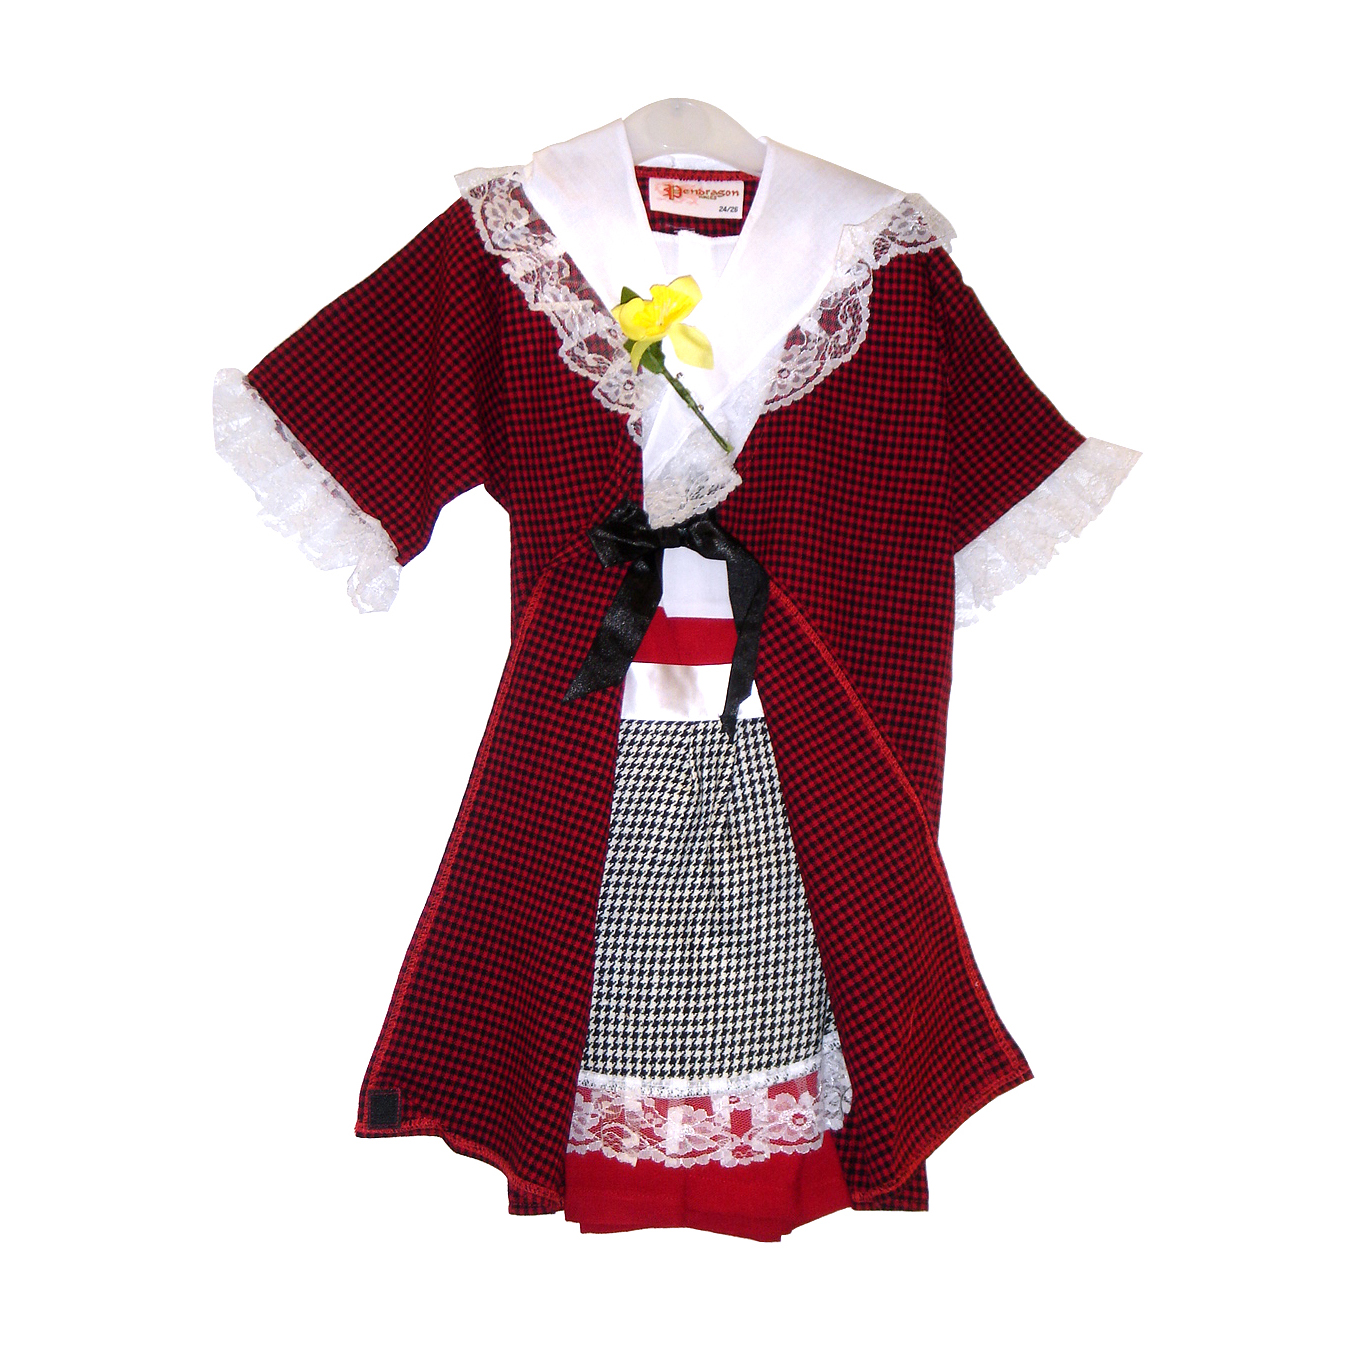 ST DAVIDS DAY WELSH COSTUME 7/8